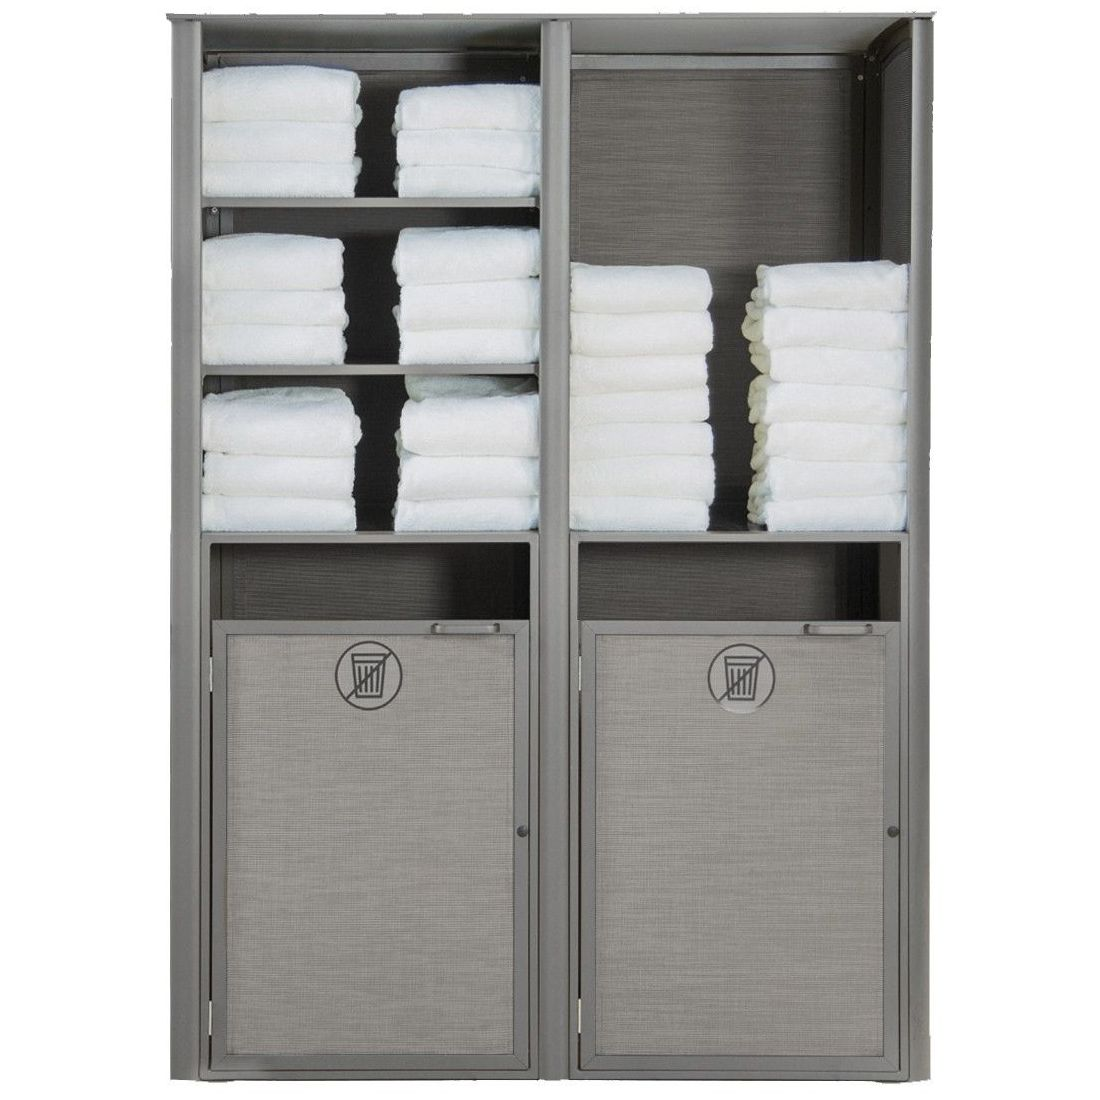 Grosfillex Sunset Towel Valet Double Unit in Solid Gray/Platinum Gray